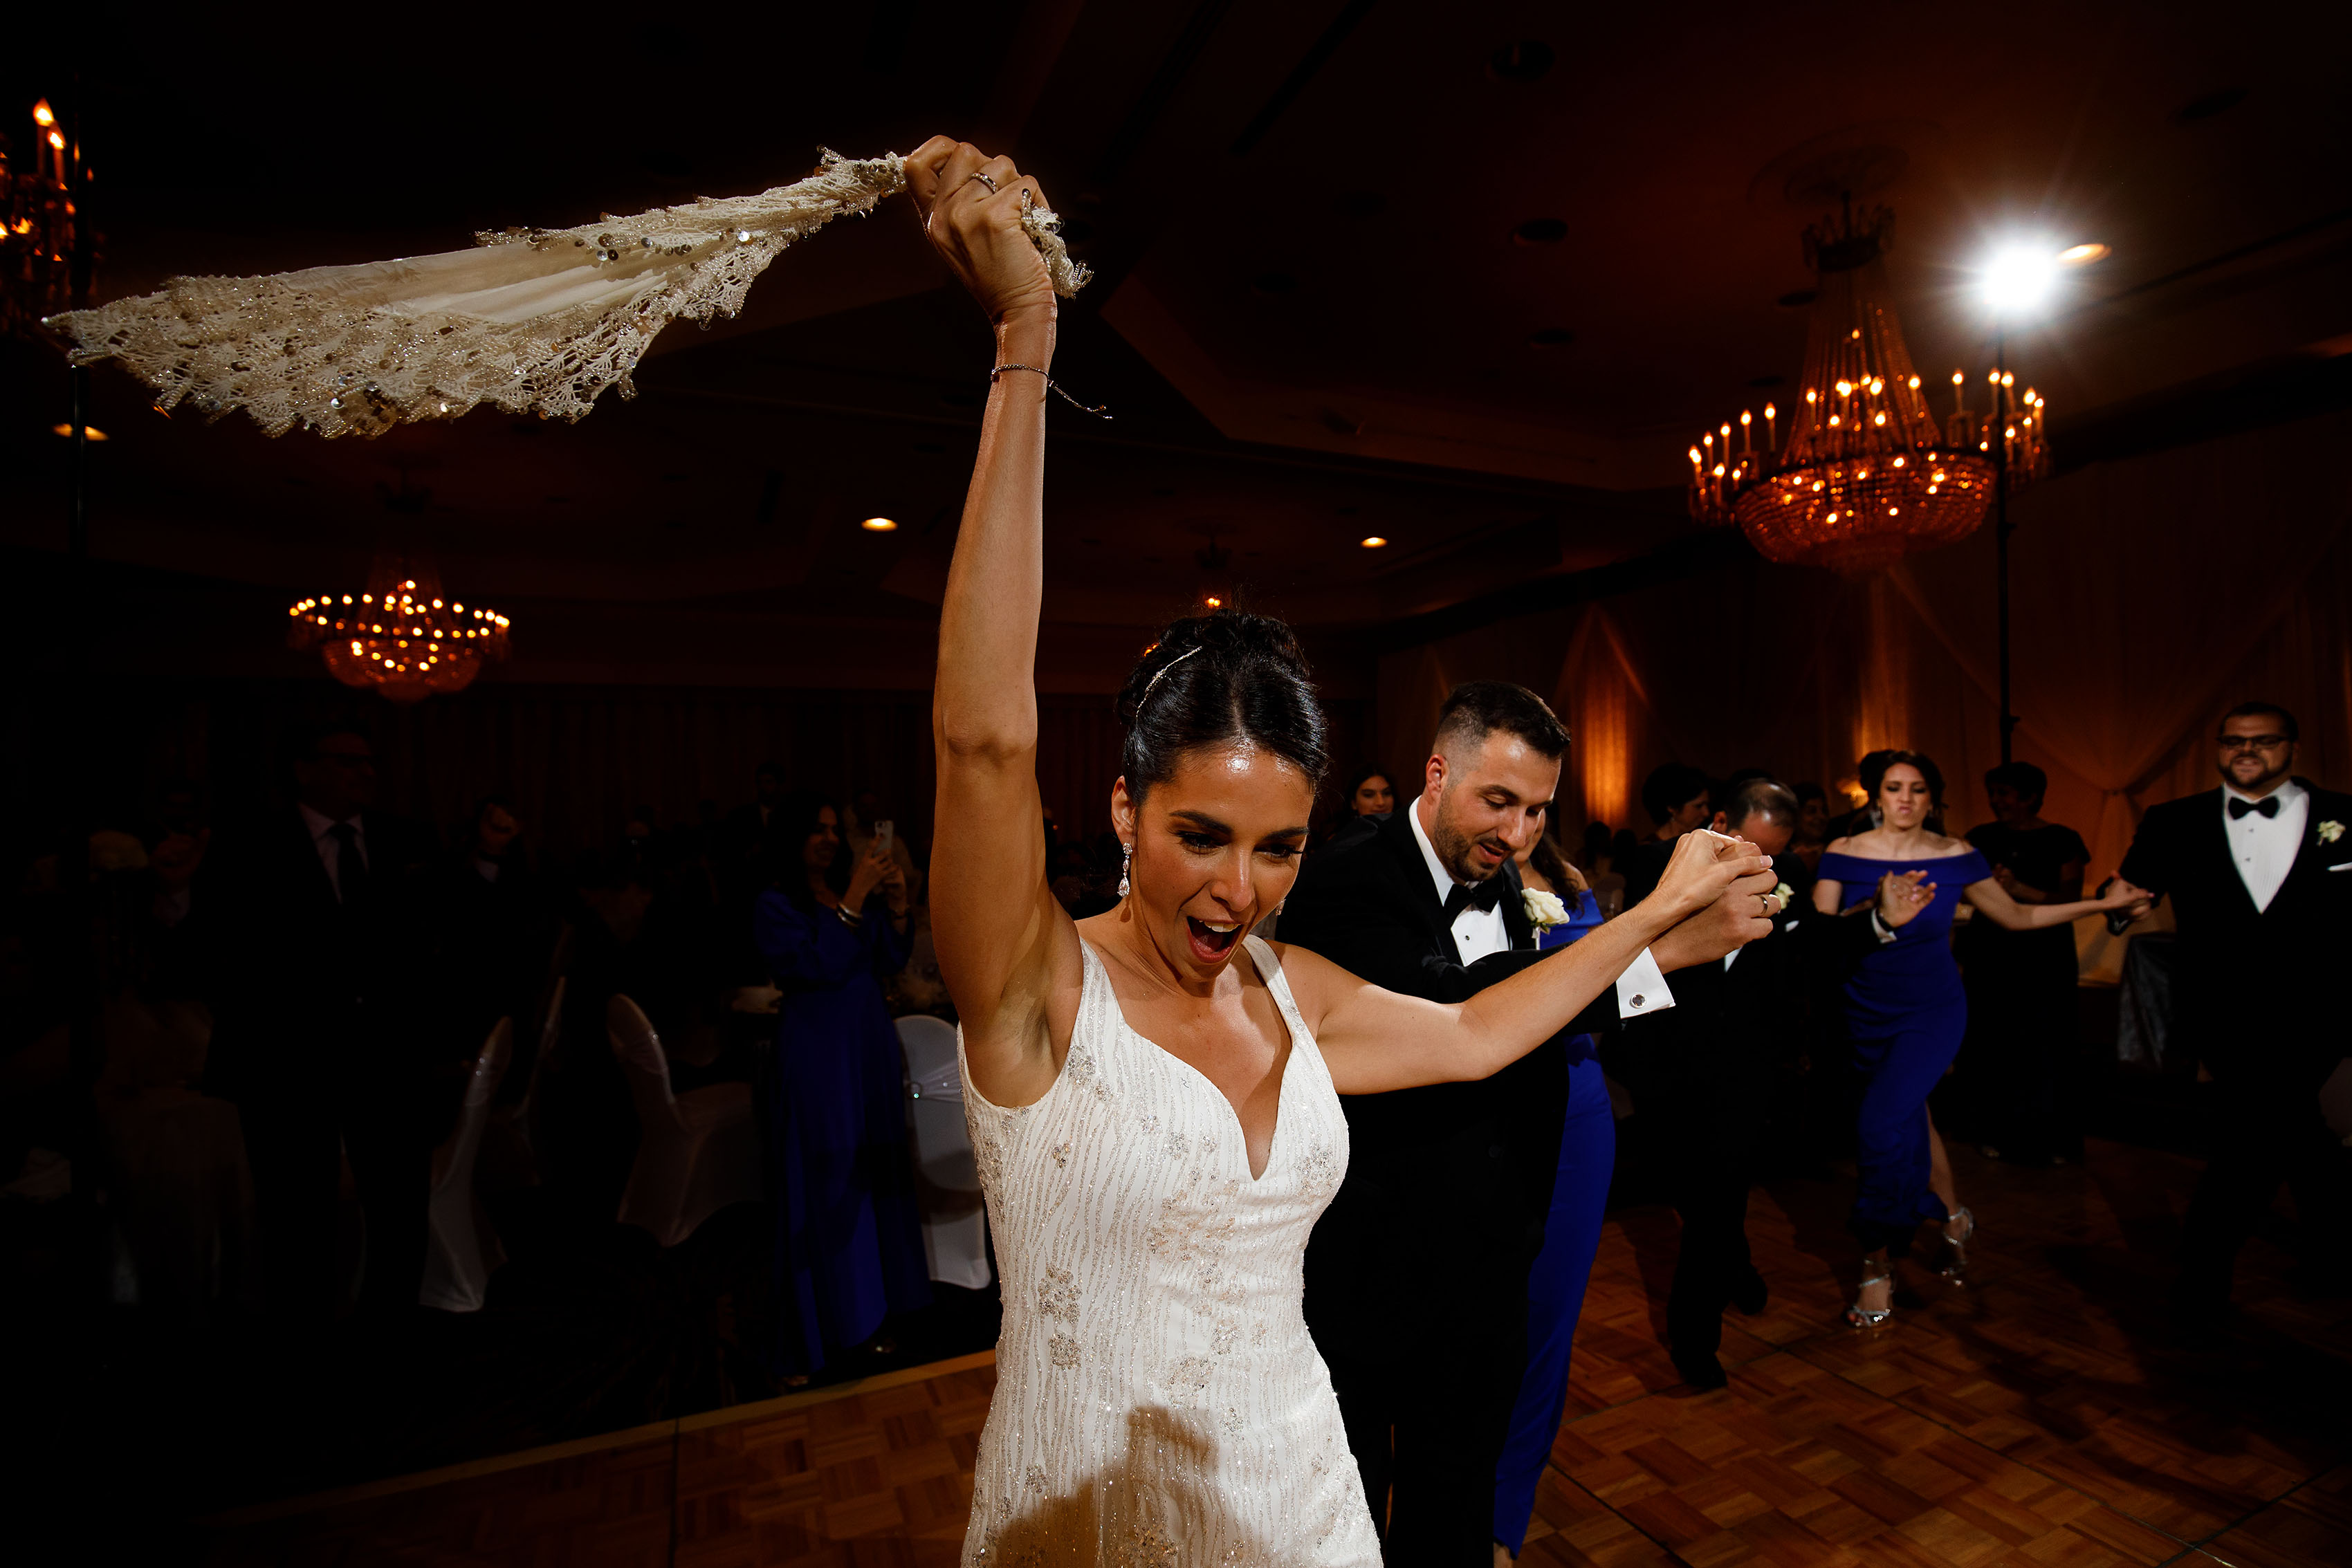 The bride leads the traditional Greek dance during her wedding at the Sheraton Albuquerque uptown